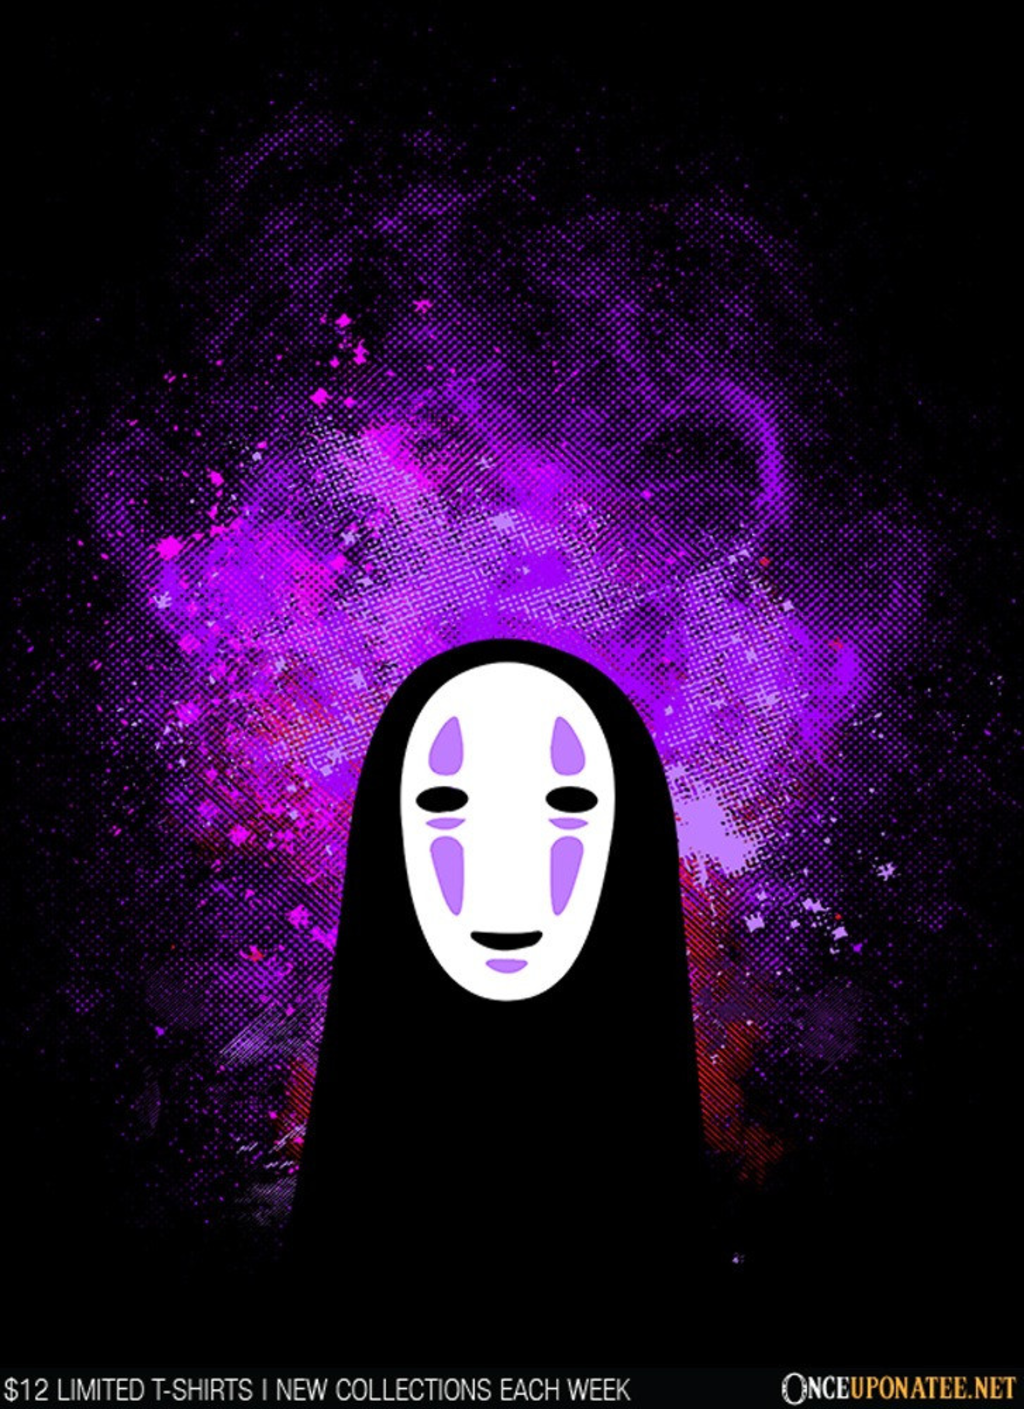 Once Upon a Tee: No Face Art